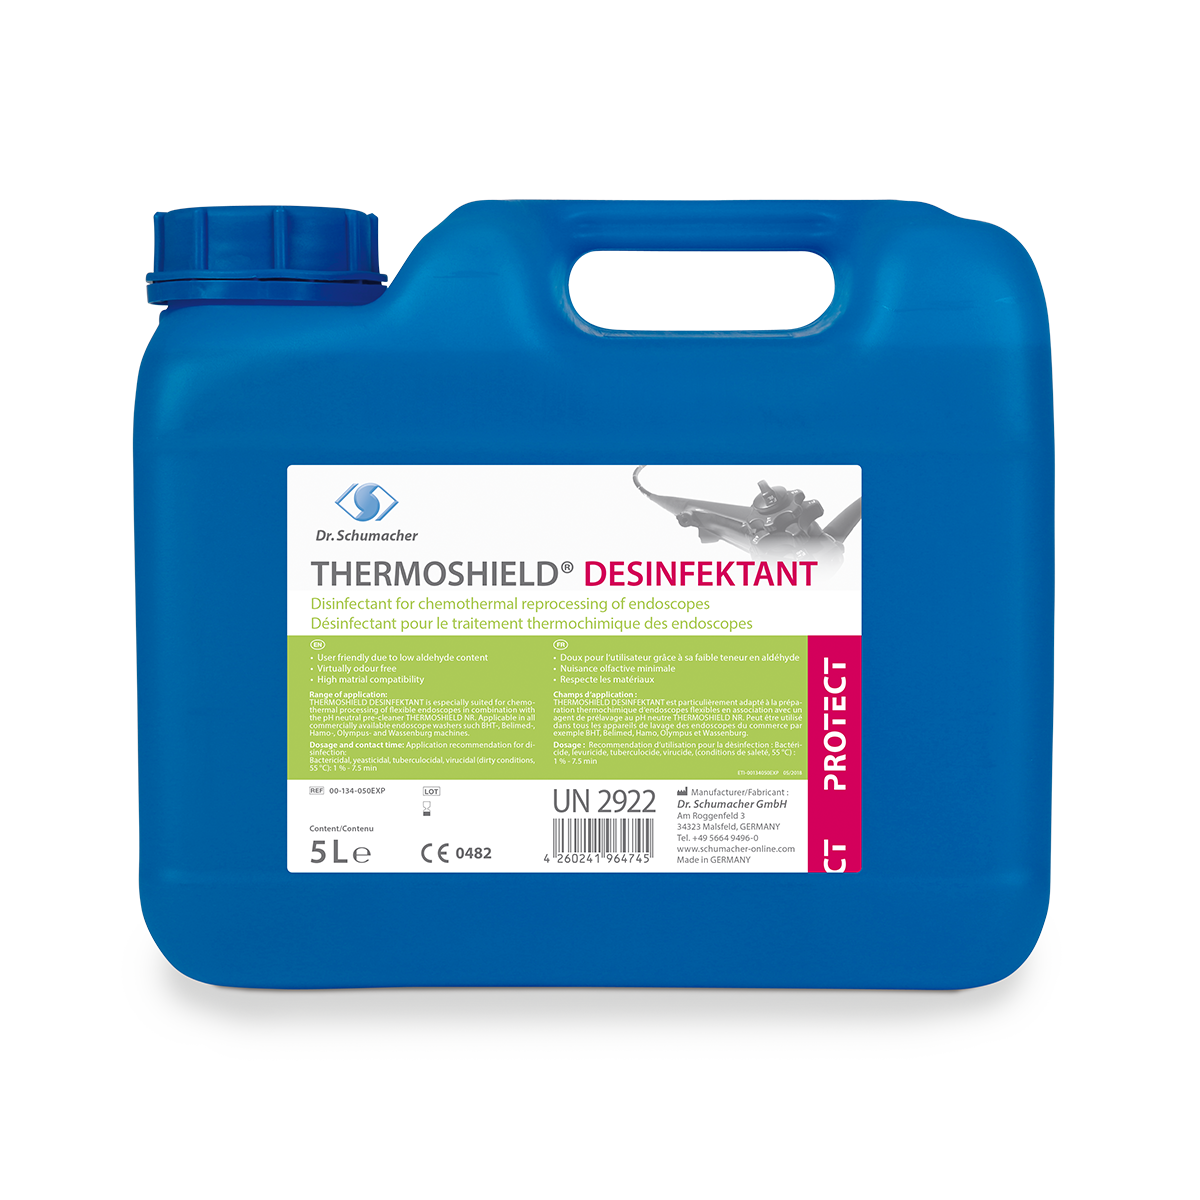 THERMOSHIELD® DESINFEKTANT